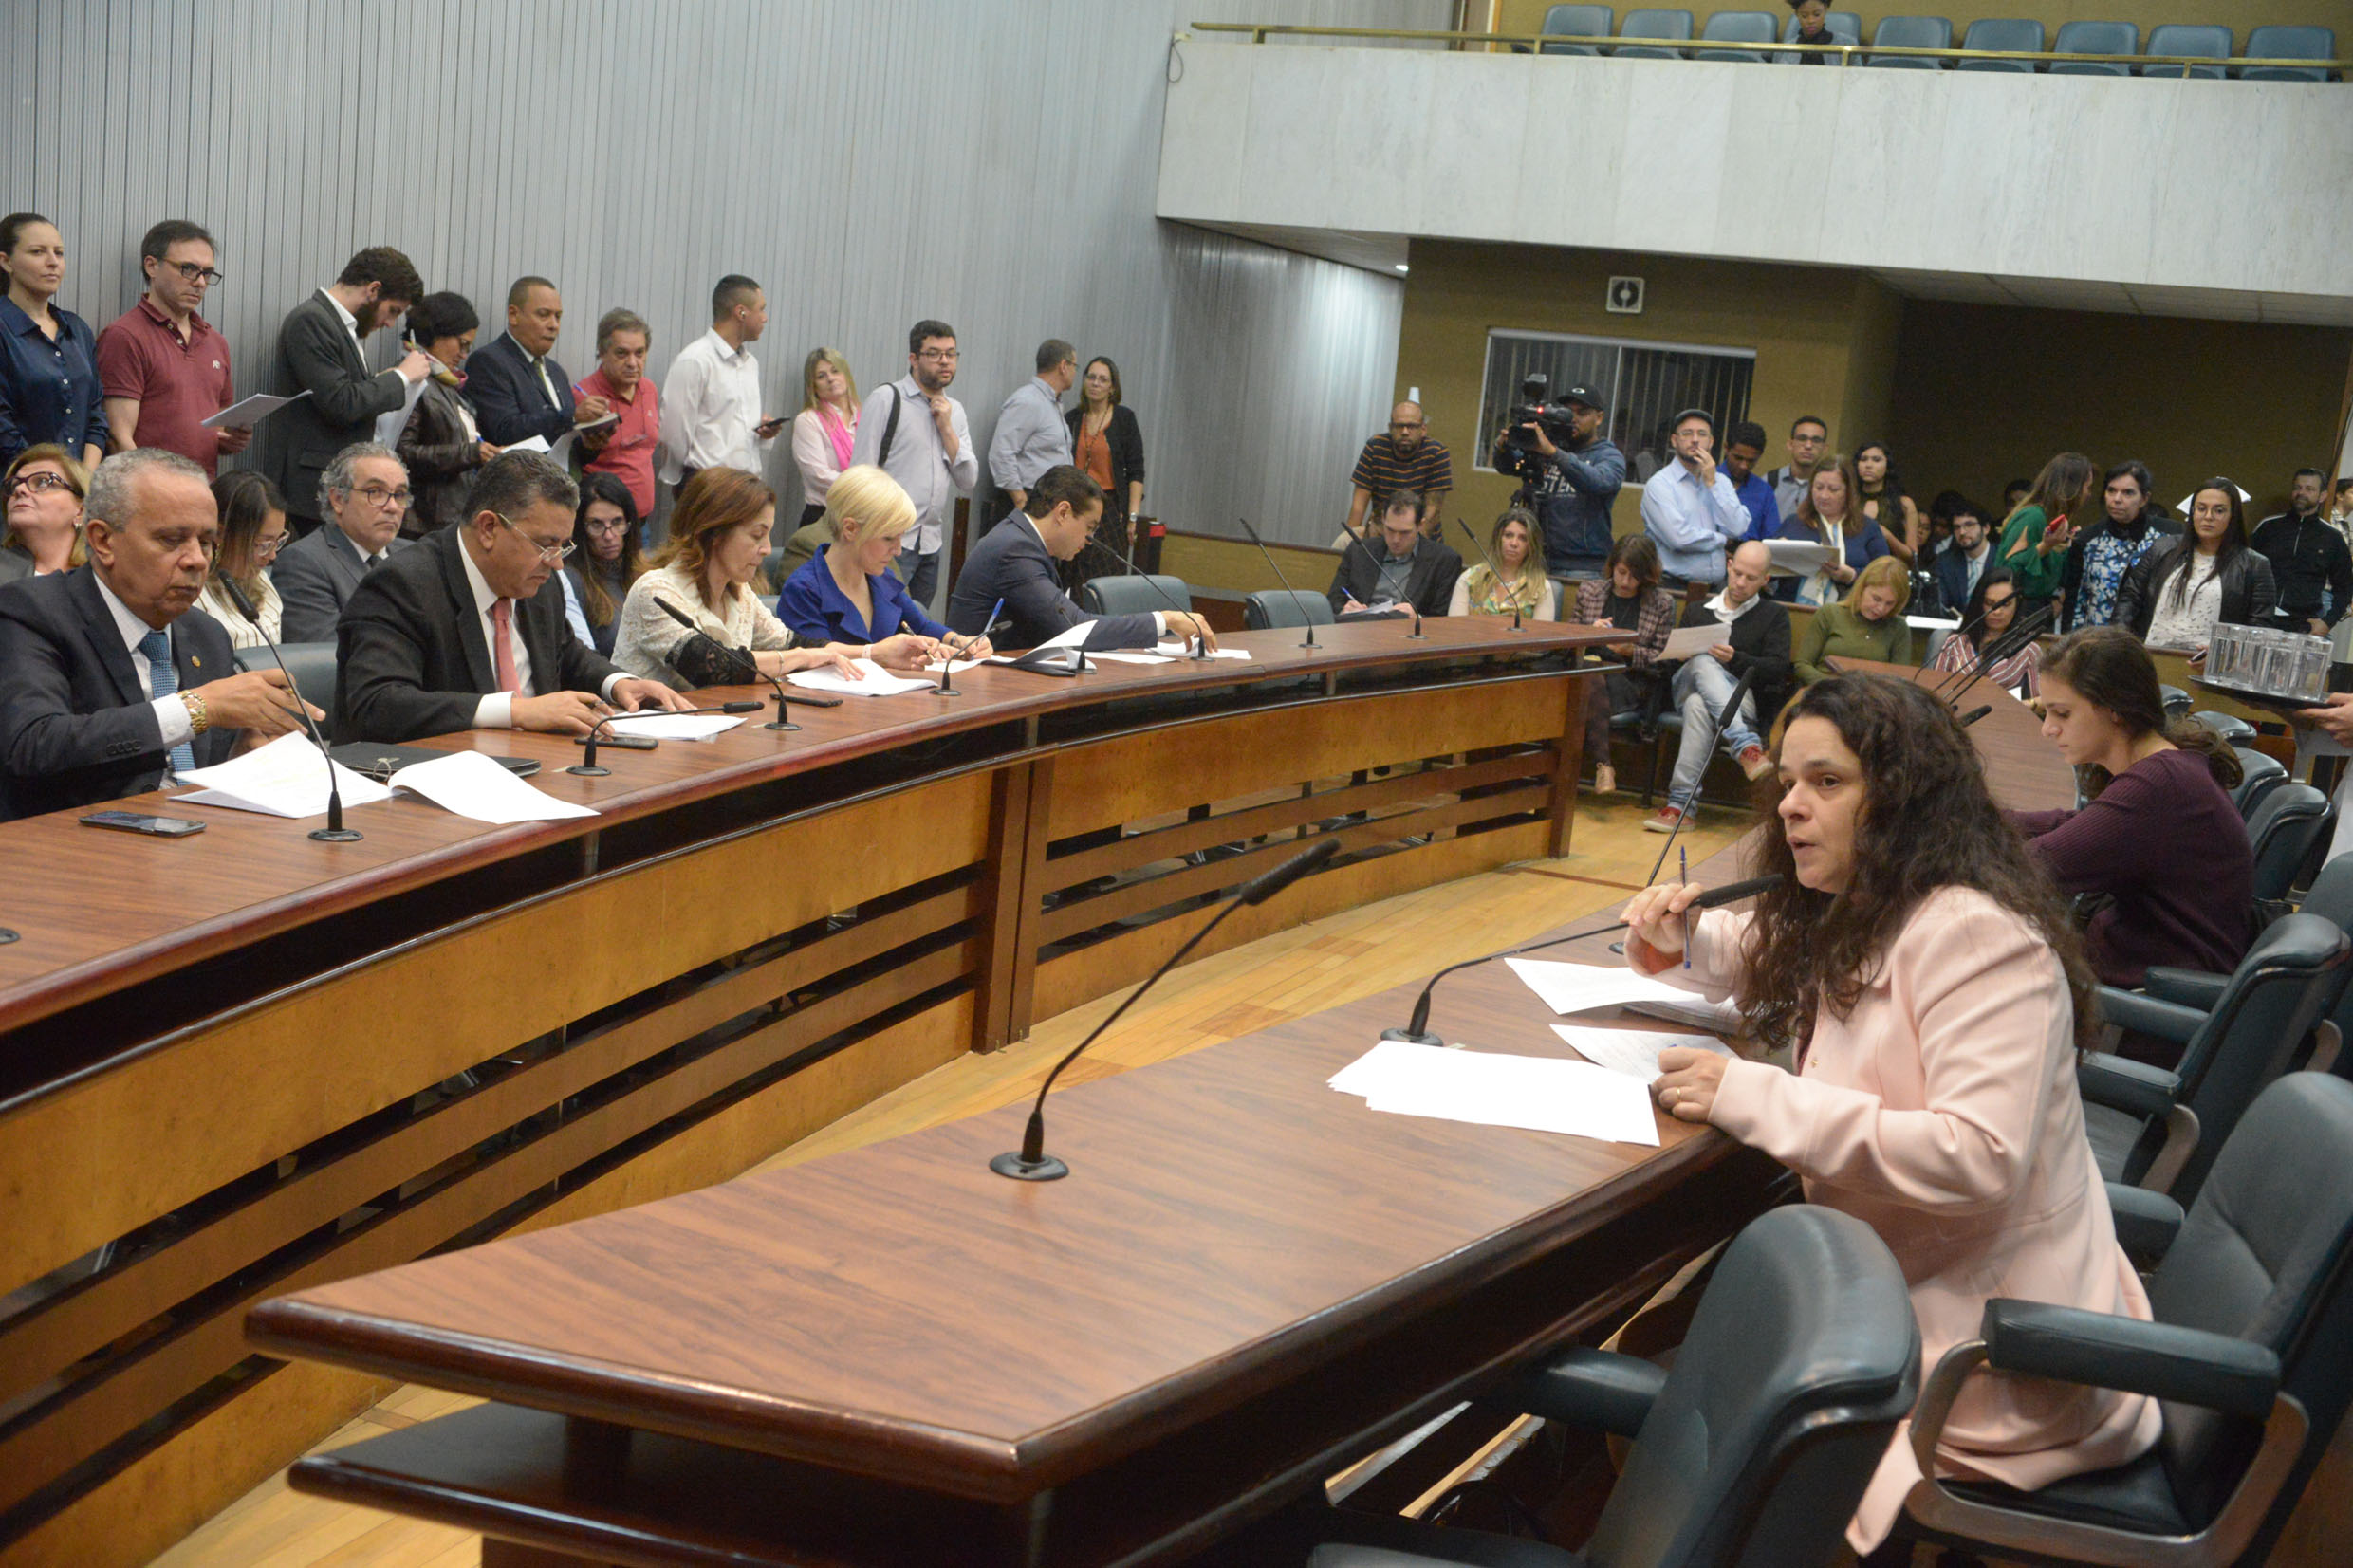 Parlamentares na comissão<a style='float:right' href='https://www3.al.sp.gov.br/repositorio/noticia/N-06-2019/fg235772.jpg' target=_blank><img src='/_img/material-file-download-white.png' width='14px' alt='Clique para baixar a imagem'></a>